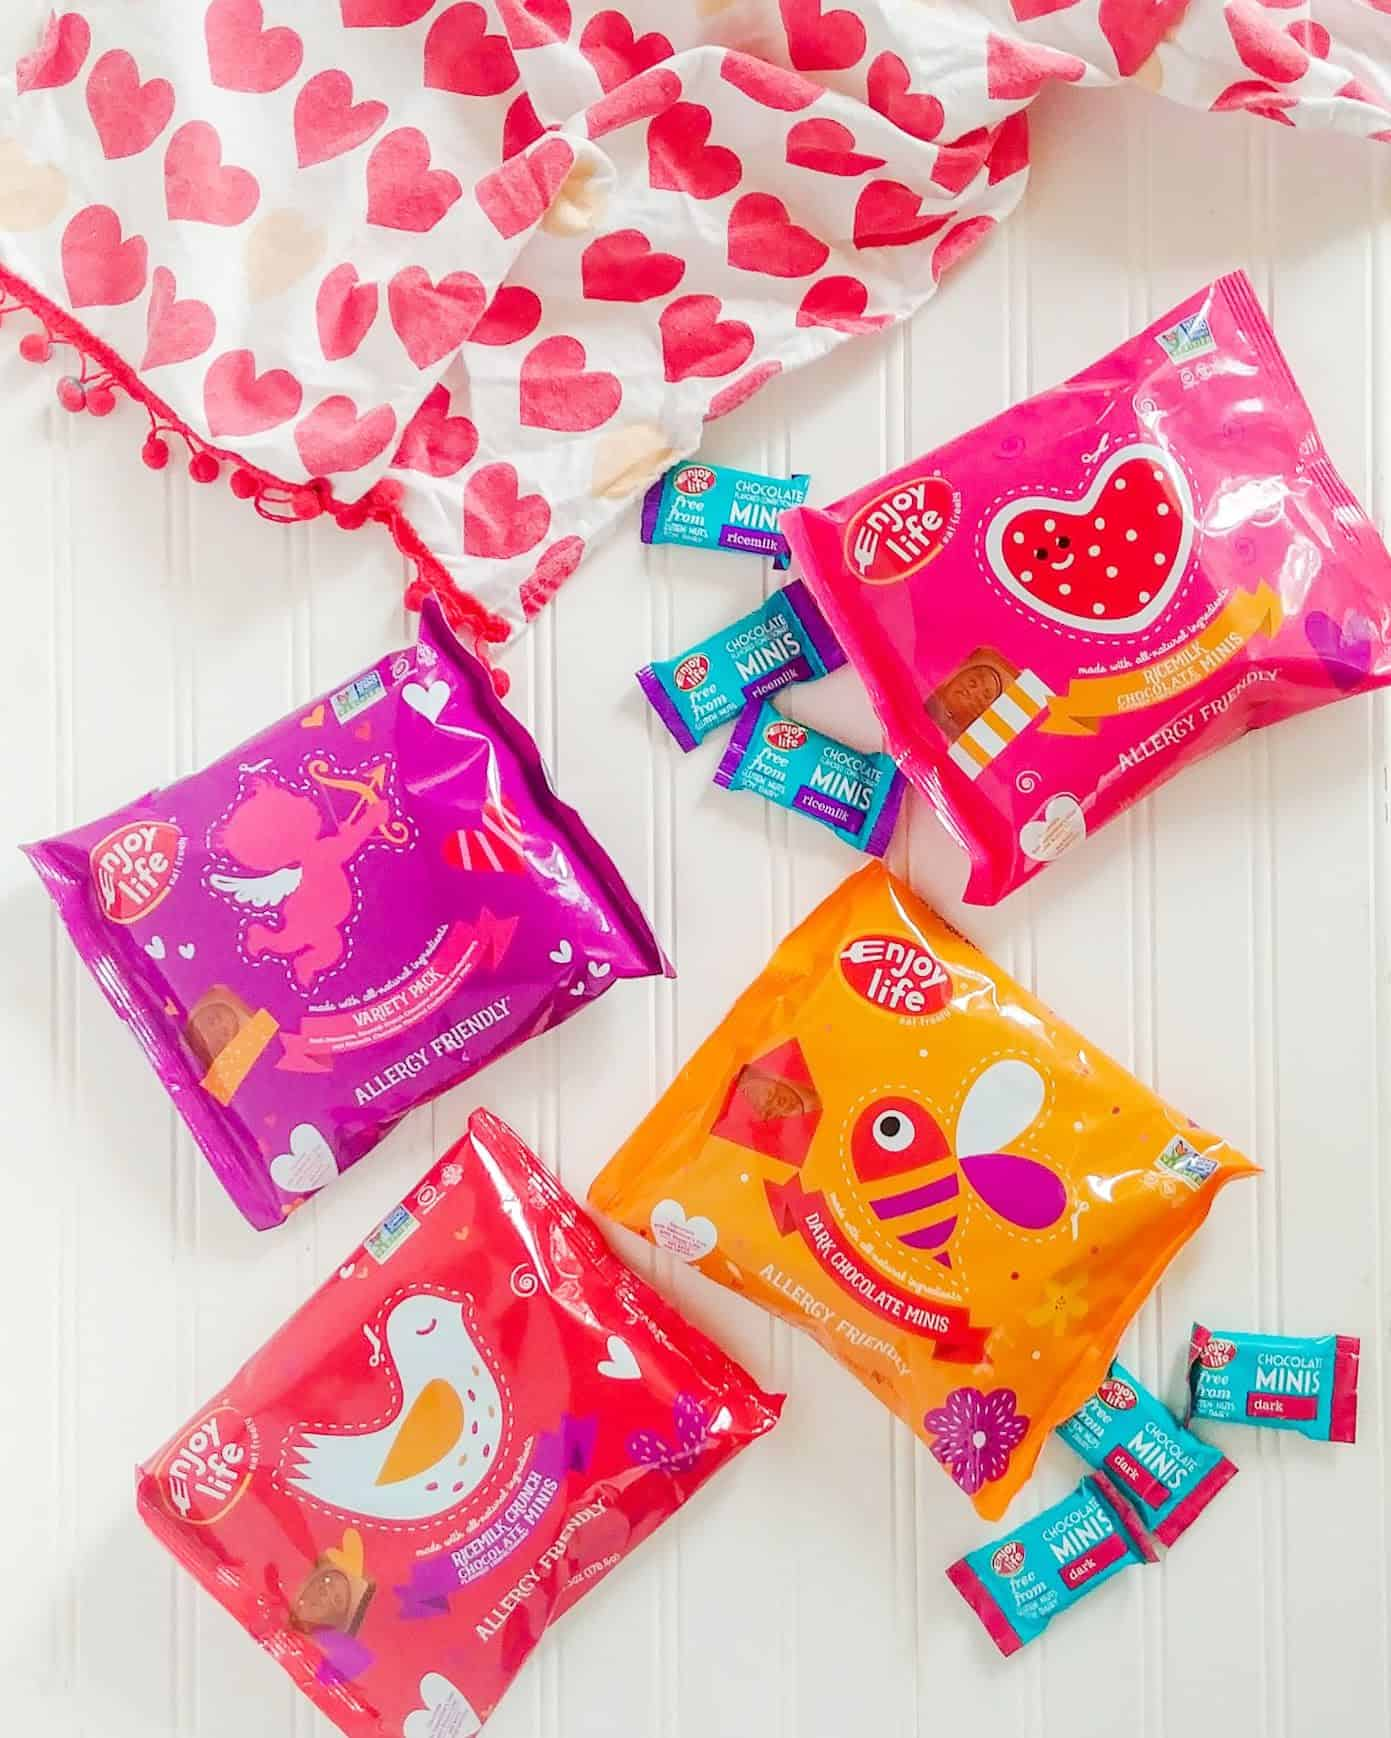 enjoy life foods vegan Valentine's day chocolate minis in packaging